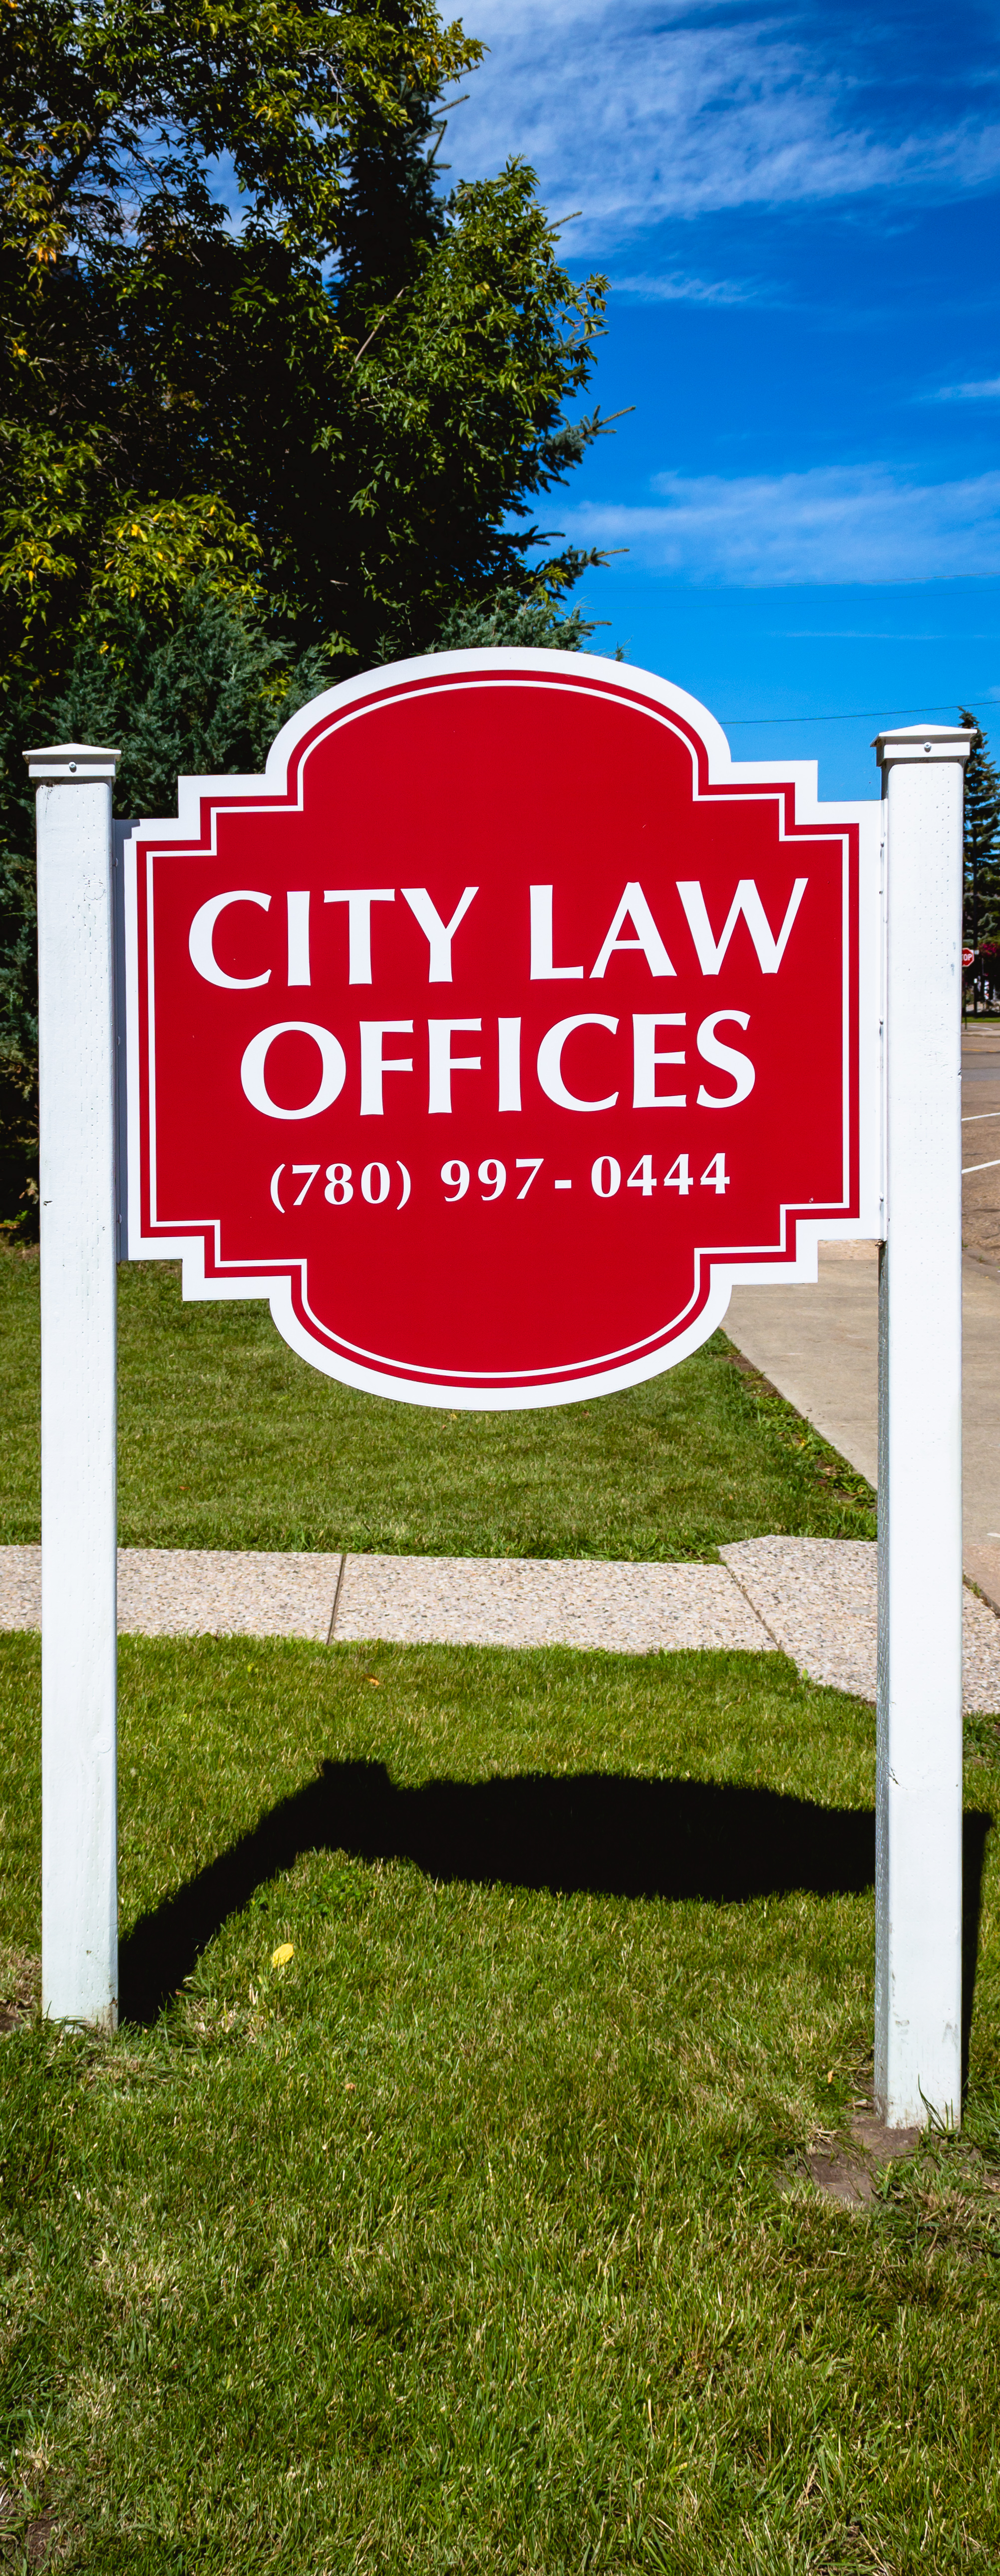 Our Story  - City Law Offices started in 2006 at the Fort Mall, by the founding partner, Emmanuel Alade and moved to its permanent home on 9812-102 Street Fort Saskatchewan, in 2015. The 25 years of combined legal experience, academic scholarship, worldwide exposure and well-trained assistants and a paralegal have imbued the law firm with the capacity to provide well-researched, experienced, personalized and satisfactory legal services to clients of all climes in many areas of law. Our areas of legal practice include but not limited to: Family Law, Will & Estate Planning including: Drafting of Will, Power of Attorney and Personal Directives, Immigration Law, Real Estate- Sale and Purchase, Corporate and Commercial Law, Personal Injury and Administrative Law. The timing and scheduling of our appointments have endeared us to our numerous clients as it affords them the flexibility of meeting with our lawyers in the evenings and sometimes on weekends by appointments.Our firm has been able to extend our legal services to outreach communities of Sherwood Park, Ardrossan, Redwater, Lamont, St. Albert, Morinville, Gibbons, Bruderheim, Sturgeon County, Tofield and Vegreville and many other Cities, Towns and Villages in the province.